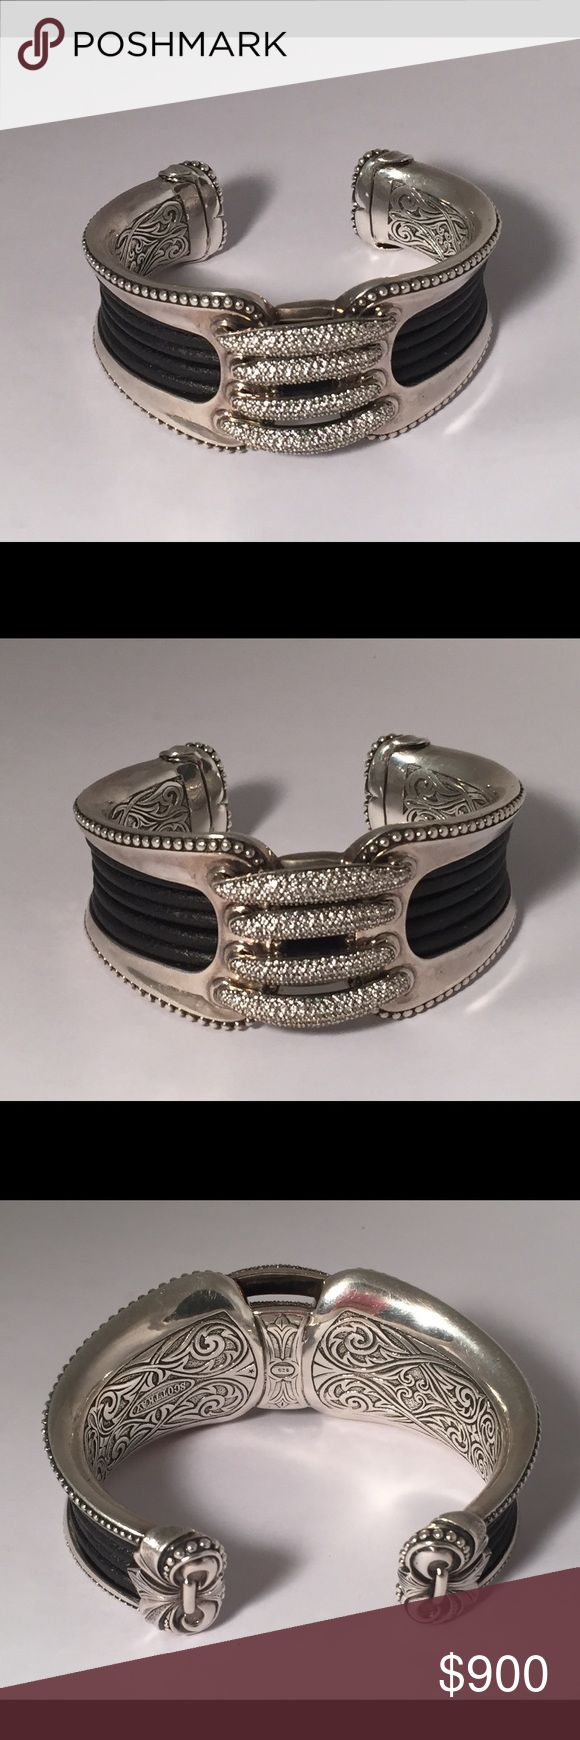 Scott Kay cuff bracelet Stunning!! Has leather, Sterling Silver, and crystals or diamonds. (I believe they are diamonds but not sure!) cuff bracelet. Weighs 127 grams. No lowballers and no trades. Priced for what it's worth. $800 firm. Scott Kay Jewelry Bracelets